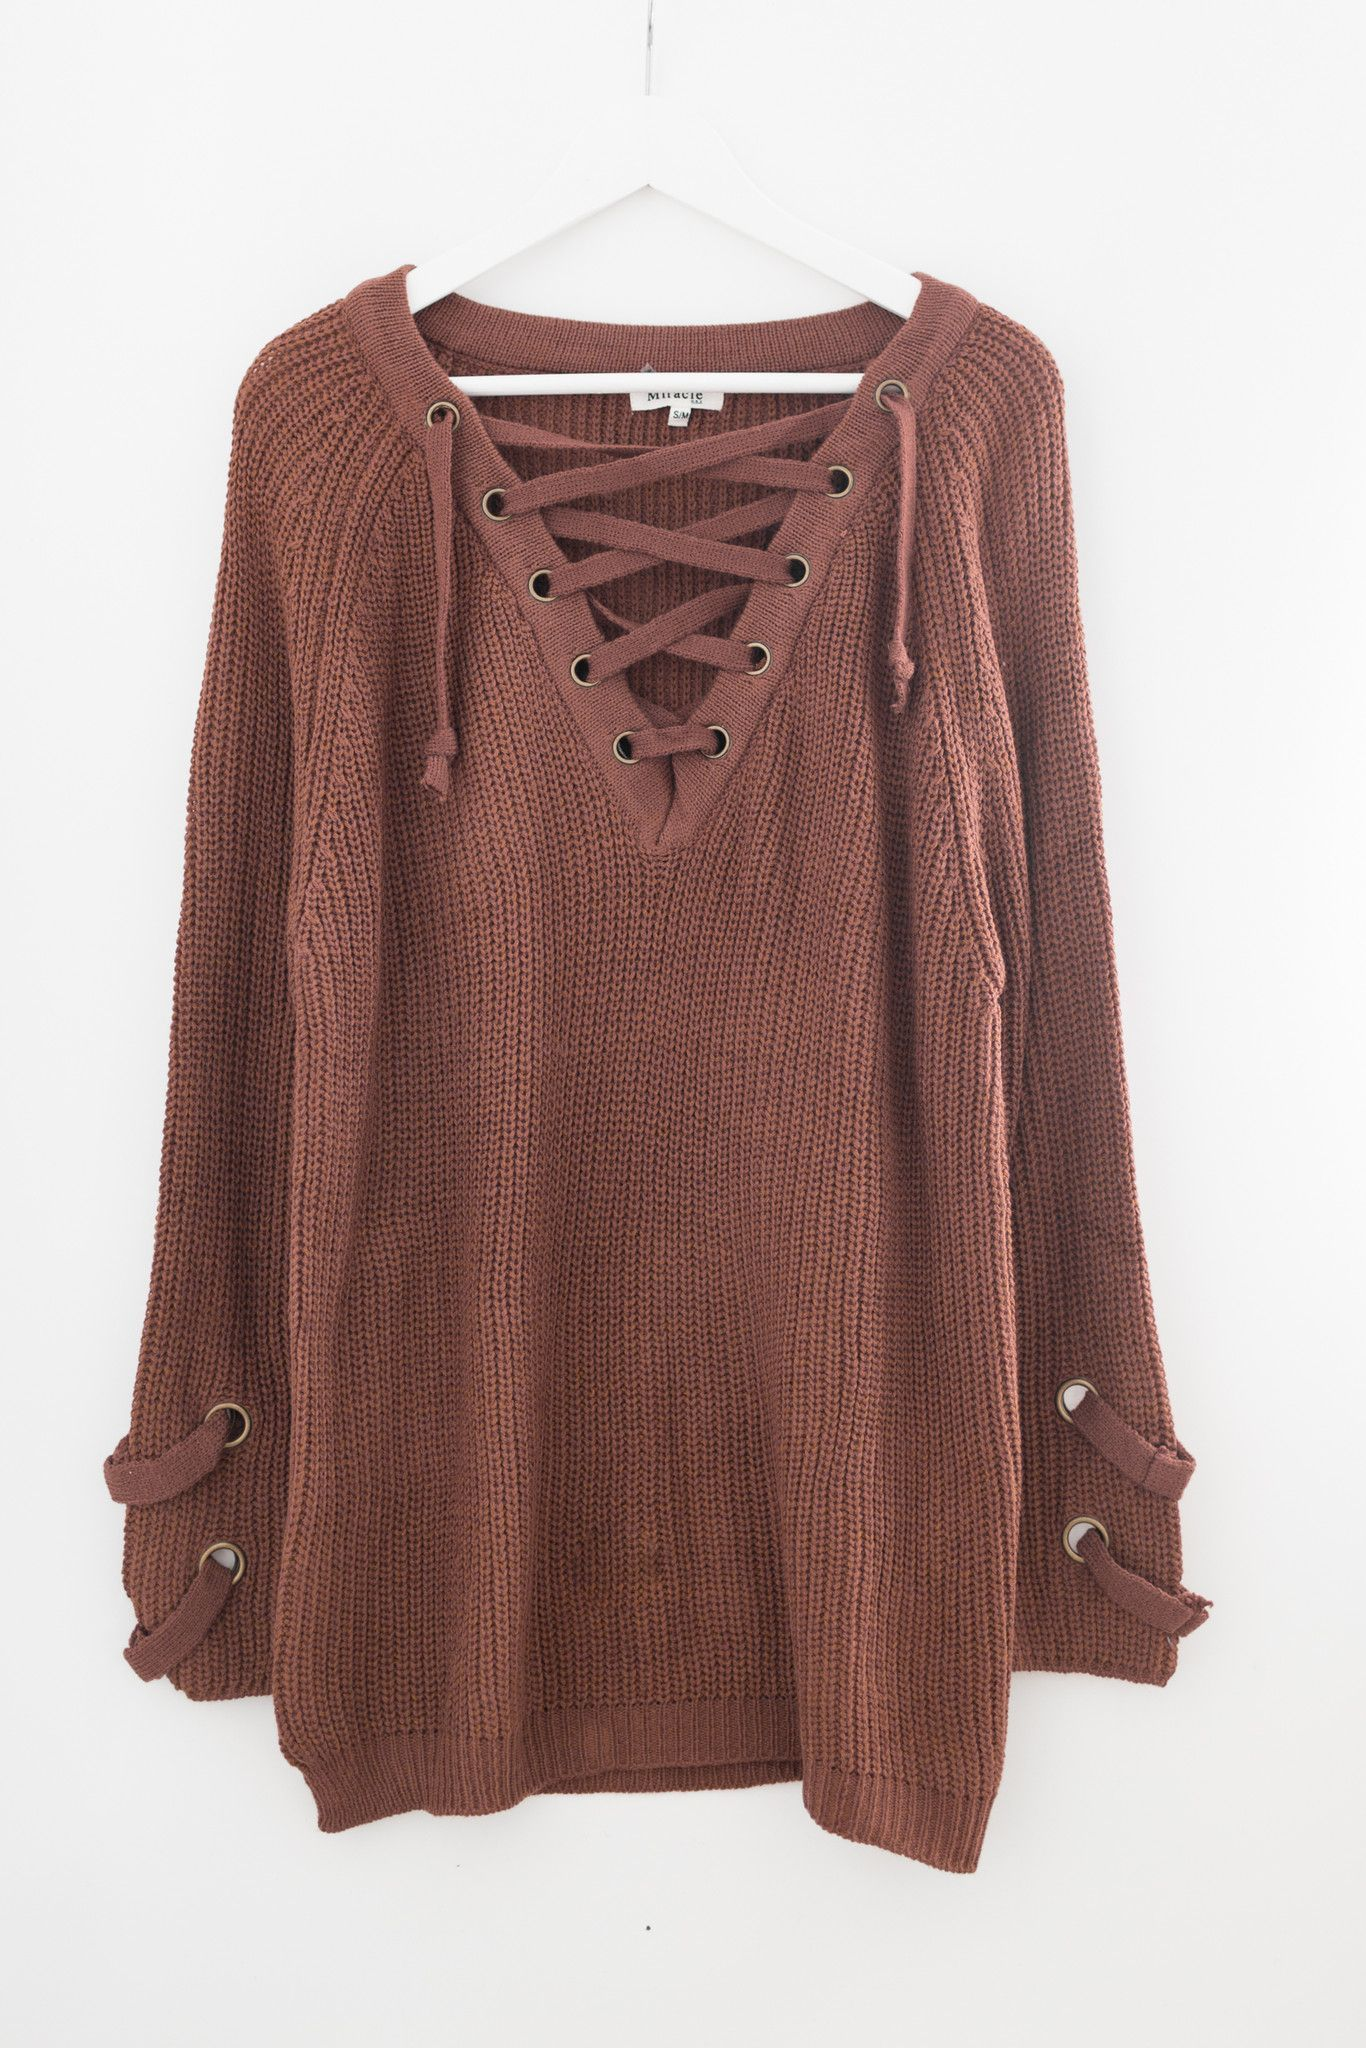 8daf6171e7 Chunky knit sweater tunic - Lace-up front - Long sleeves with criss-cross  strap side detailing - Slightly loose fit - Size S M measures approx.